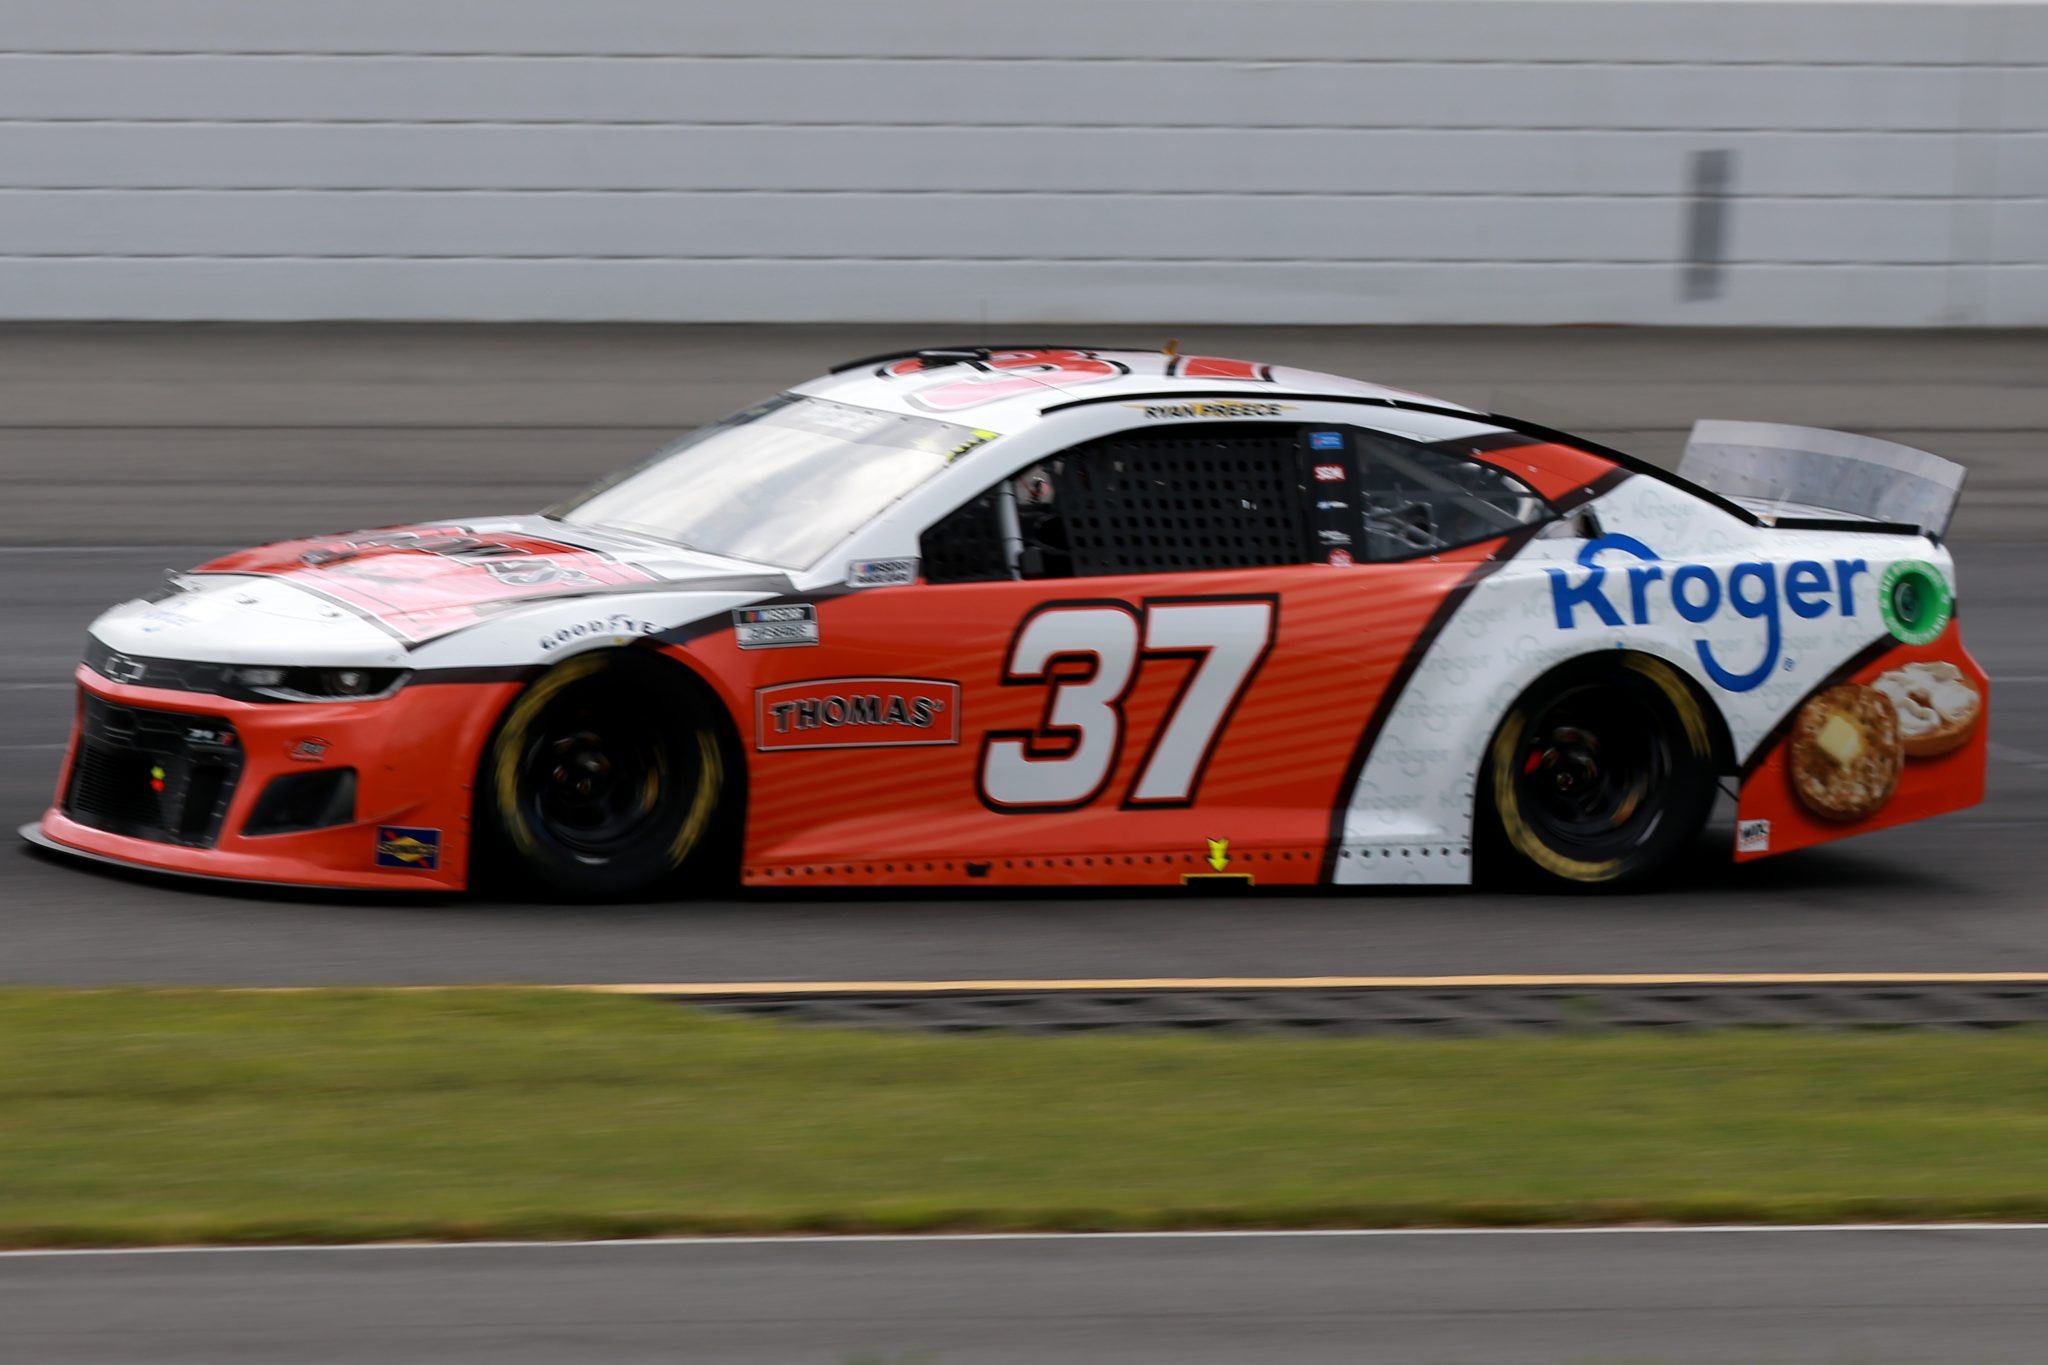 LONG POND, PENNSYLVANIA - JUNE 26: Ryan Preece, driver of the #37 Thomas'/Kroger Chevrolet, drives during the NASCAR Cup Series Pocono Organics CBD 325 at Pocono Raceway on June 26, 2021 in Long Pond, Pennsylvania. (Photo by Sean Gardner/Getty Images) | Getty Images